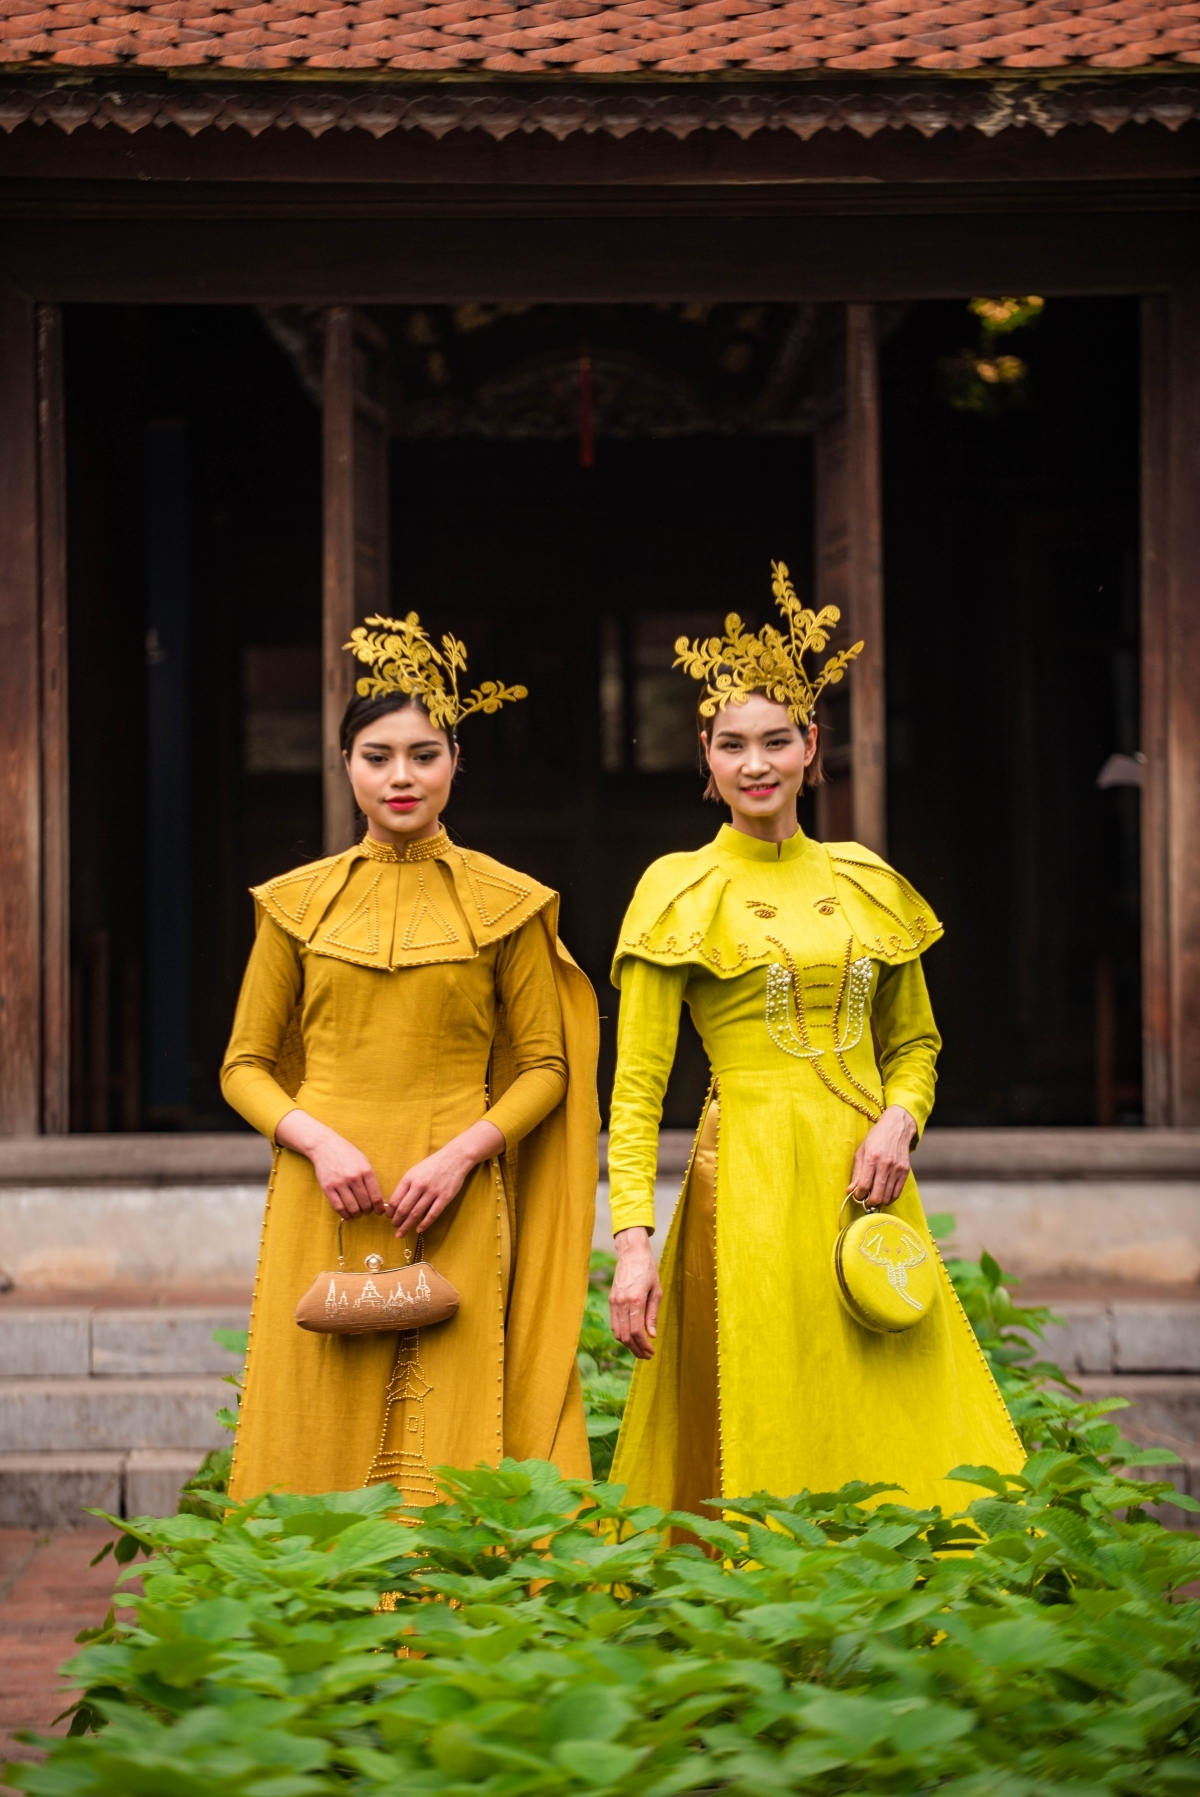 The show also aims to raise public awareness and responsibility towards preserving and promoting Ao Dai, the national costume. The outfit is widely regarded as a key part of national cultural heritage, according to the organisers of the event.